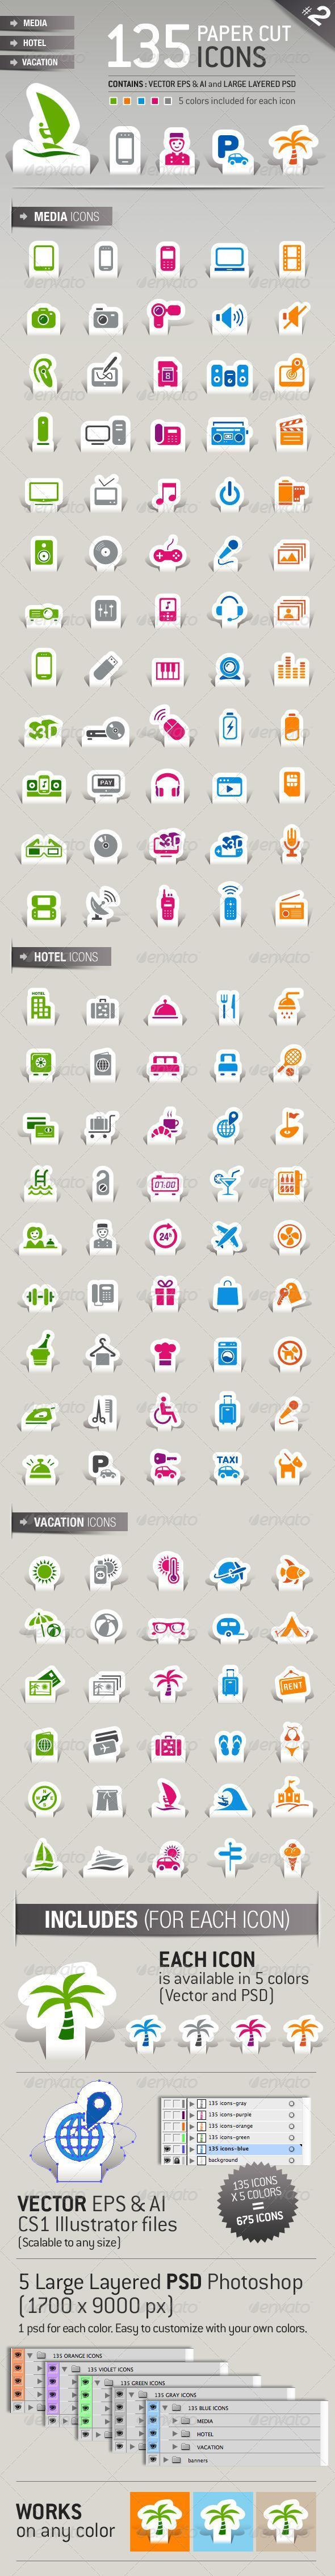 Sticker Travel Icons Vector Premium